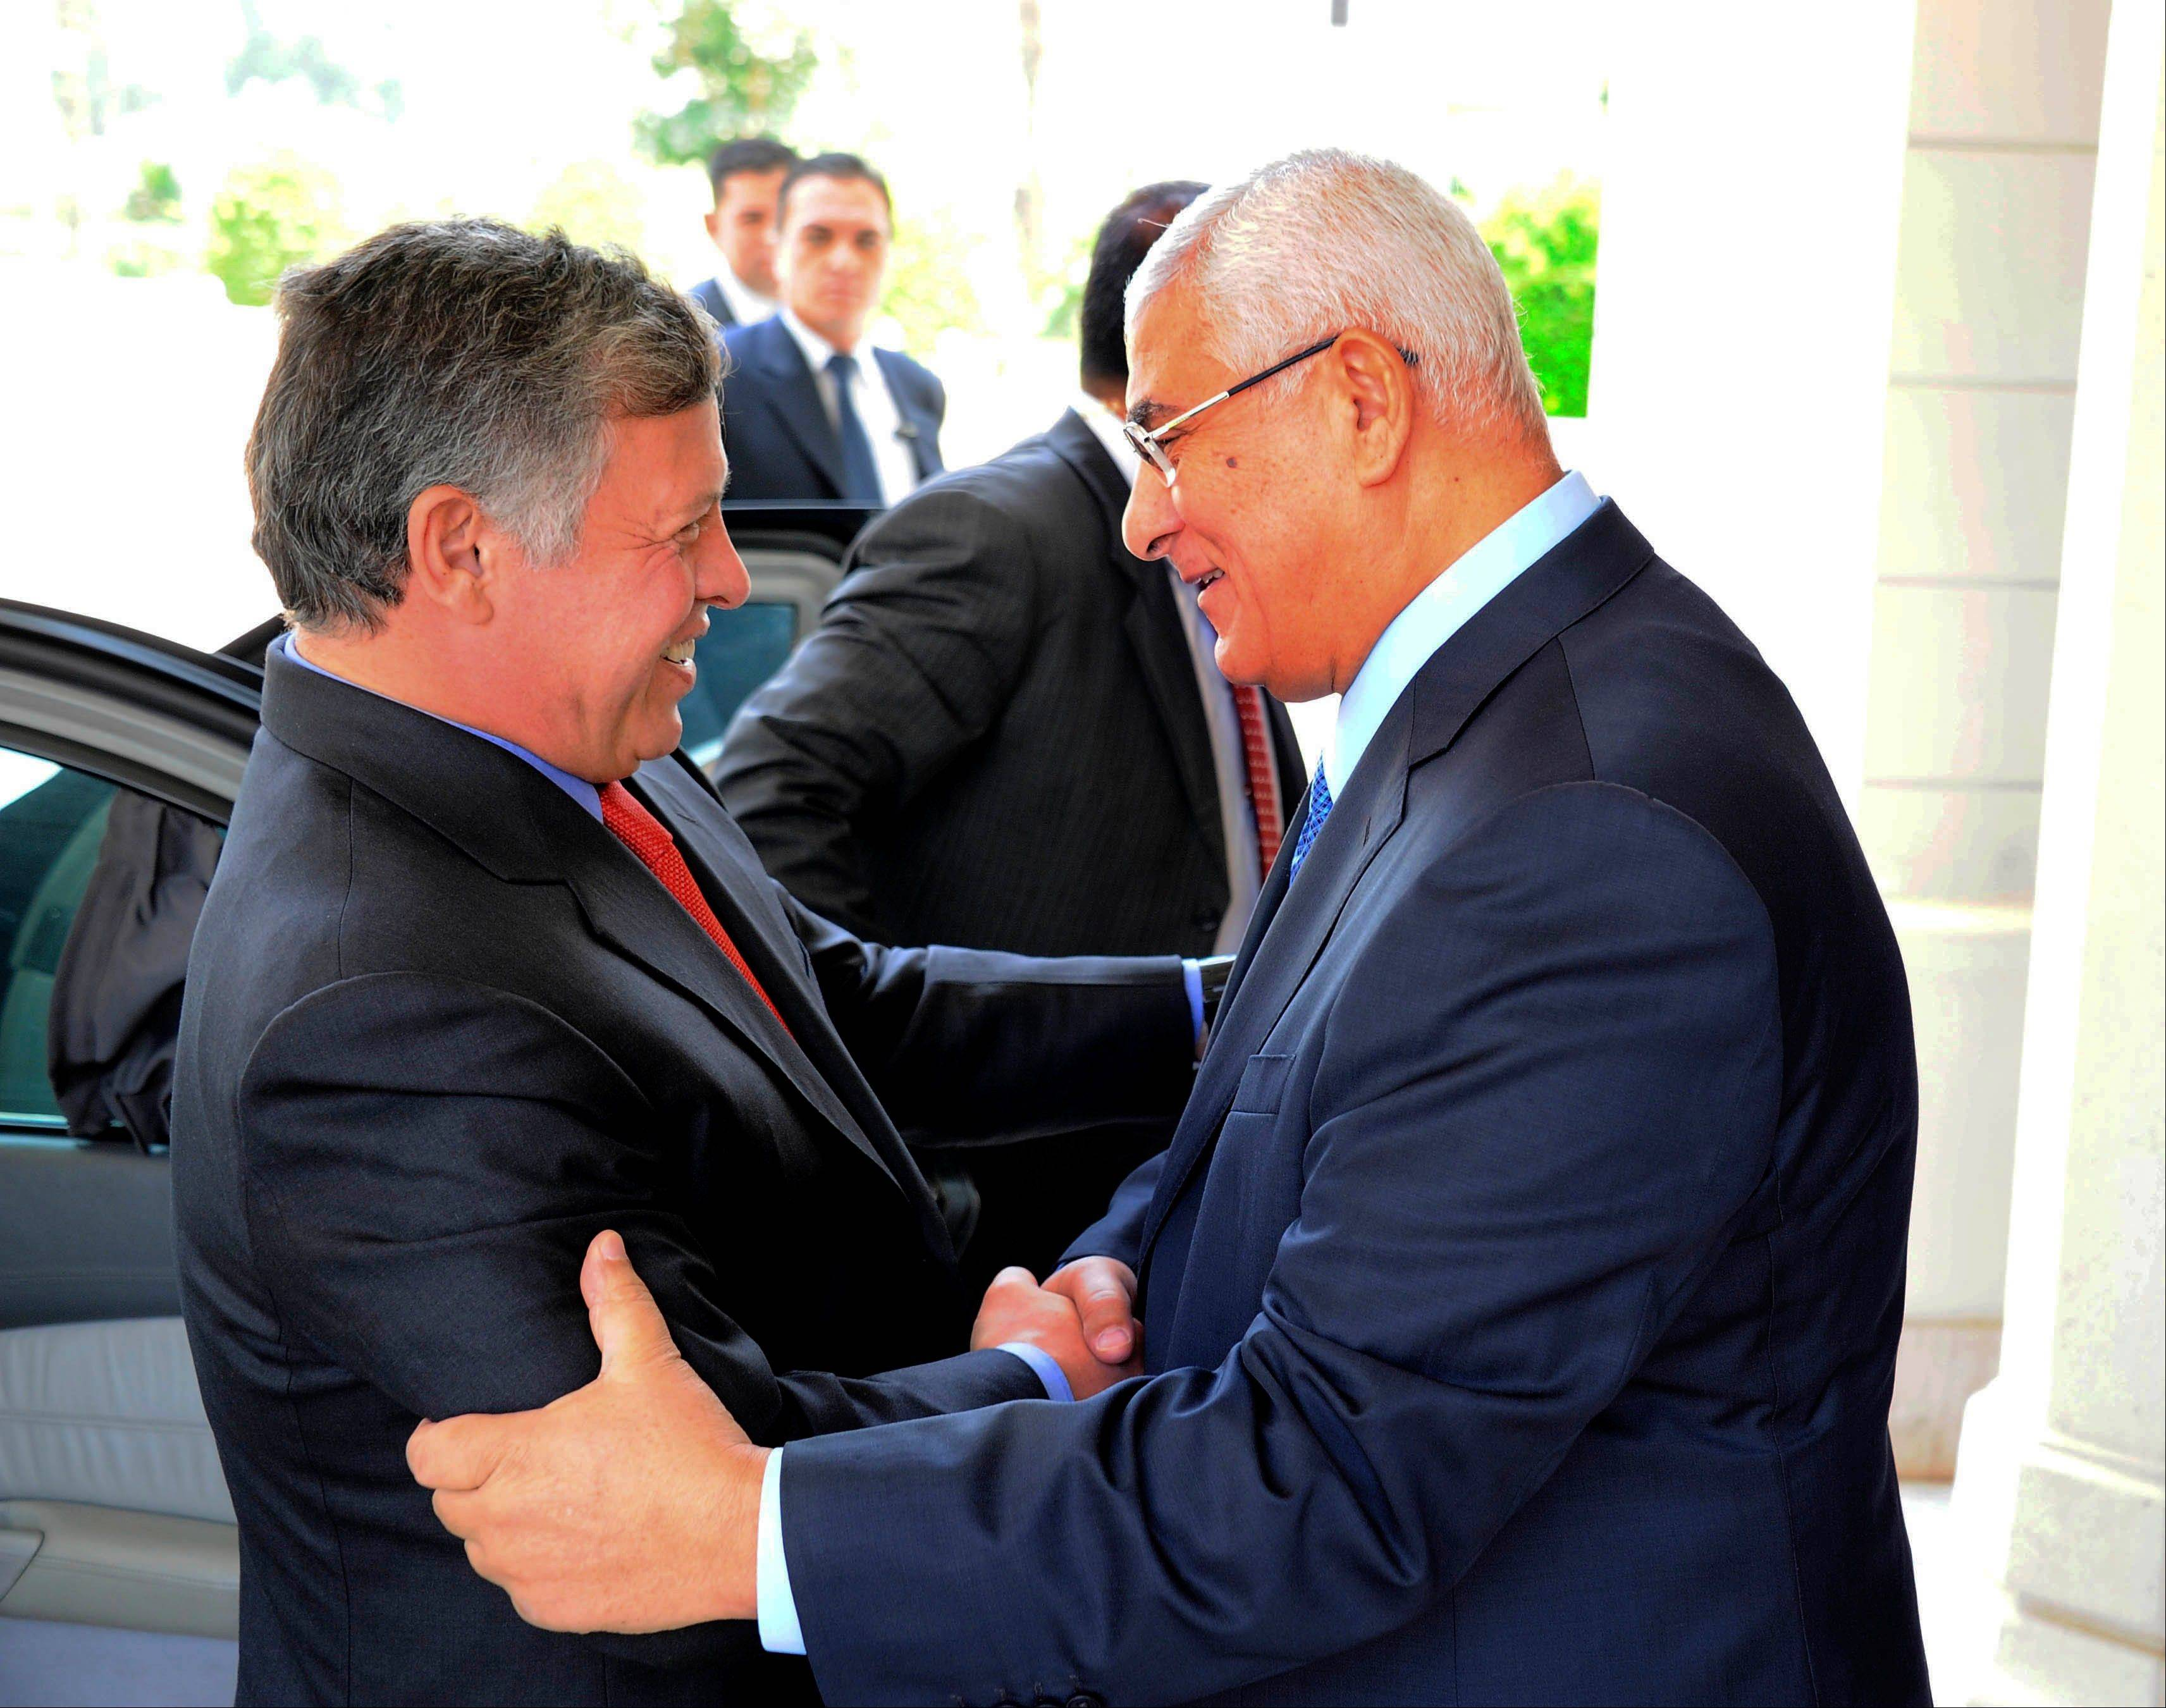 Associated PressIn this image released by the Egyptian presidency, Egyptian President Adly Mansour, right, greets Jordan's King Abdullah II on his arrival to the presidential palace, Saturday, July 20. Jordan's King arrived in Egypt's capital on Saturday for a short visit -- the first visit by a head of state to Egypt since the ouster of President Mohamed Morsi on July 3.